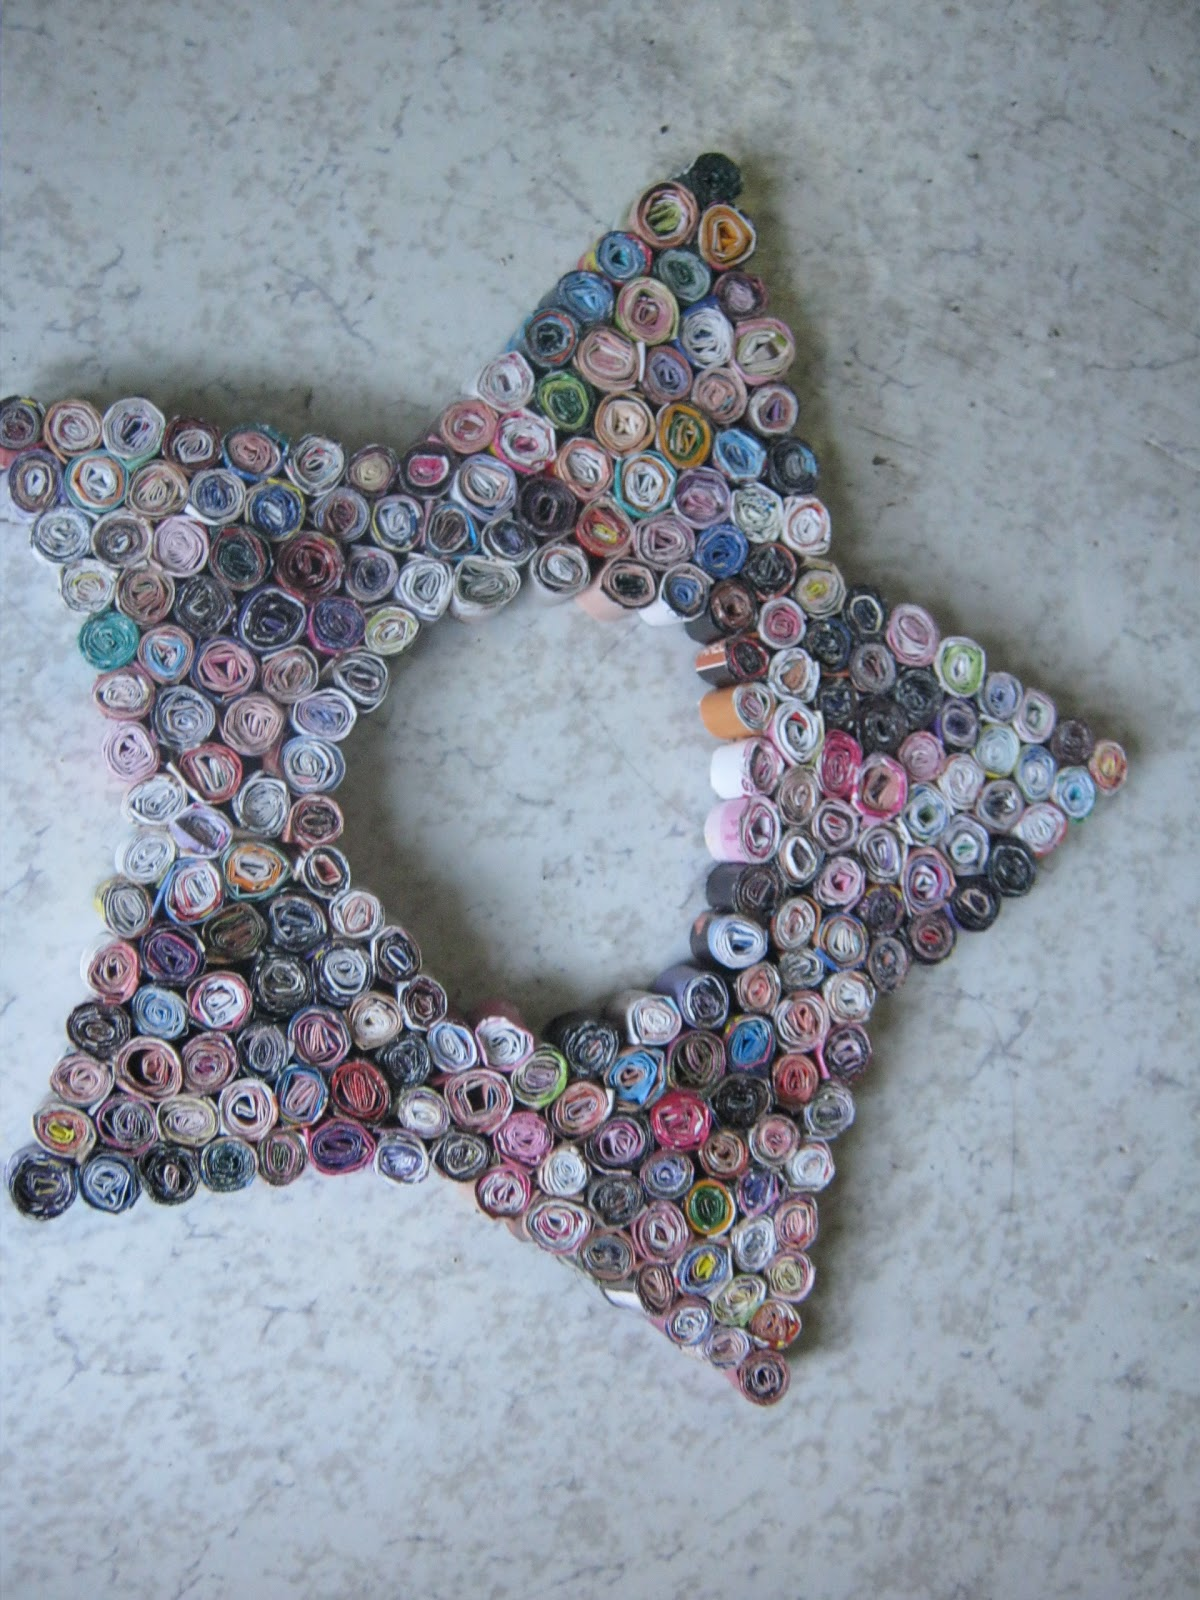 How To Recycle Recycled Christmas Star Decorations